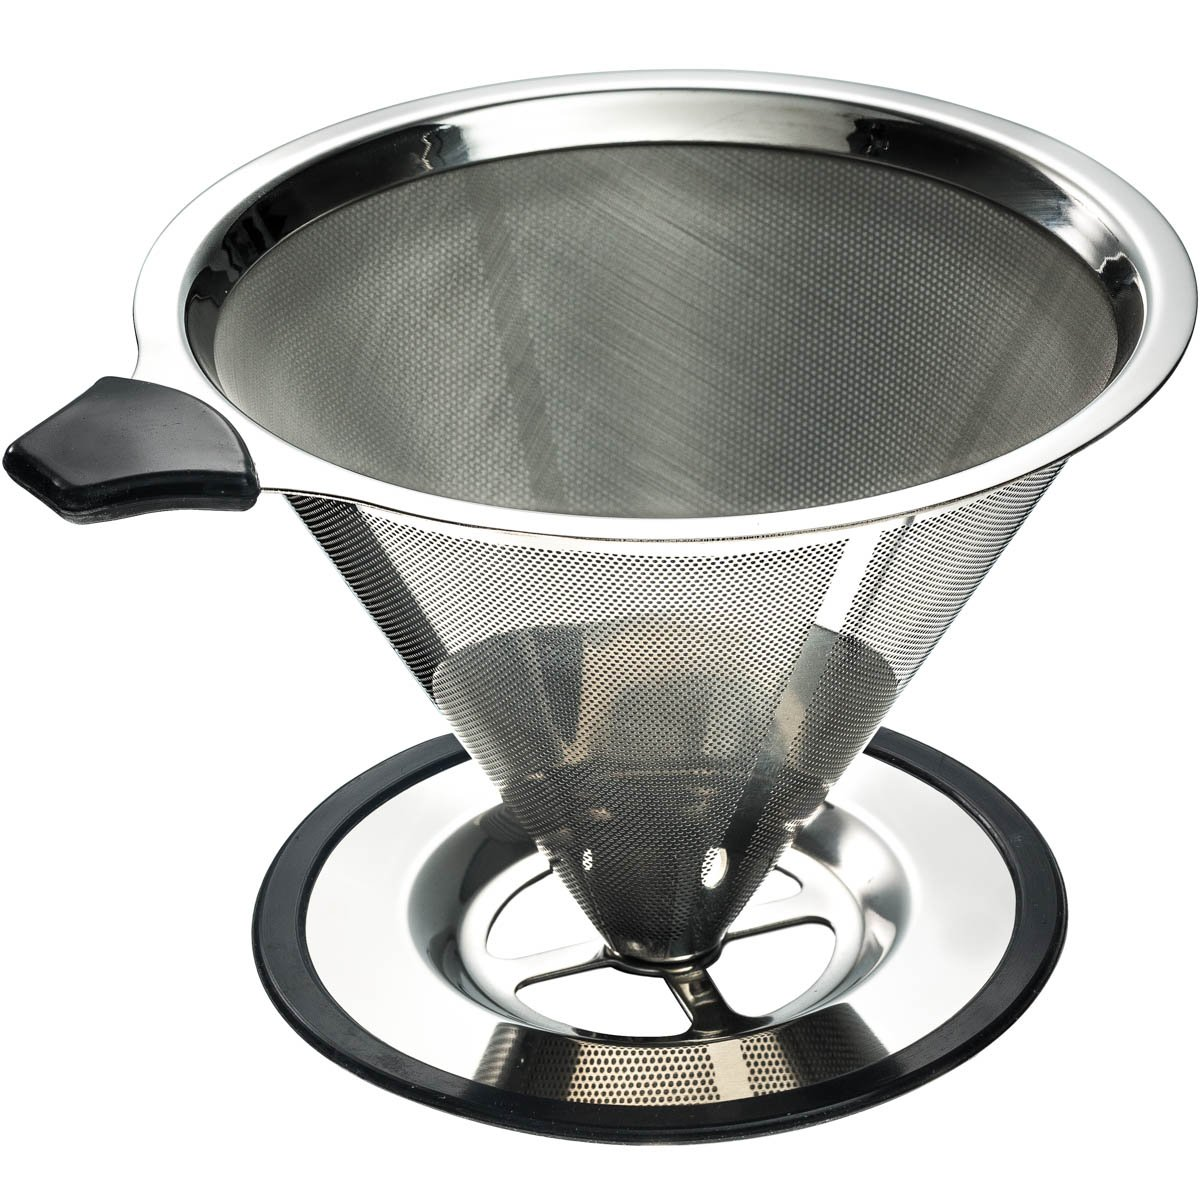 Stainless Steel Pour Over Coffee Cone Dripper with Cup Stand - Perfect for Manual Brewing - Ultra Fine Micro Mesh Filter - Paperless and Reusable - BONUS: Coffee Scooping Spoon + Cleaning Brush by Yitelle